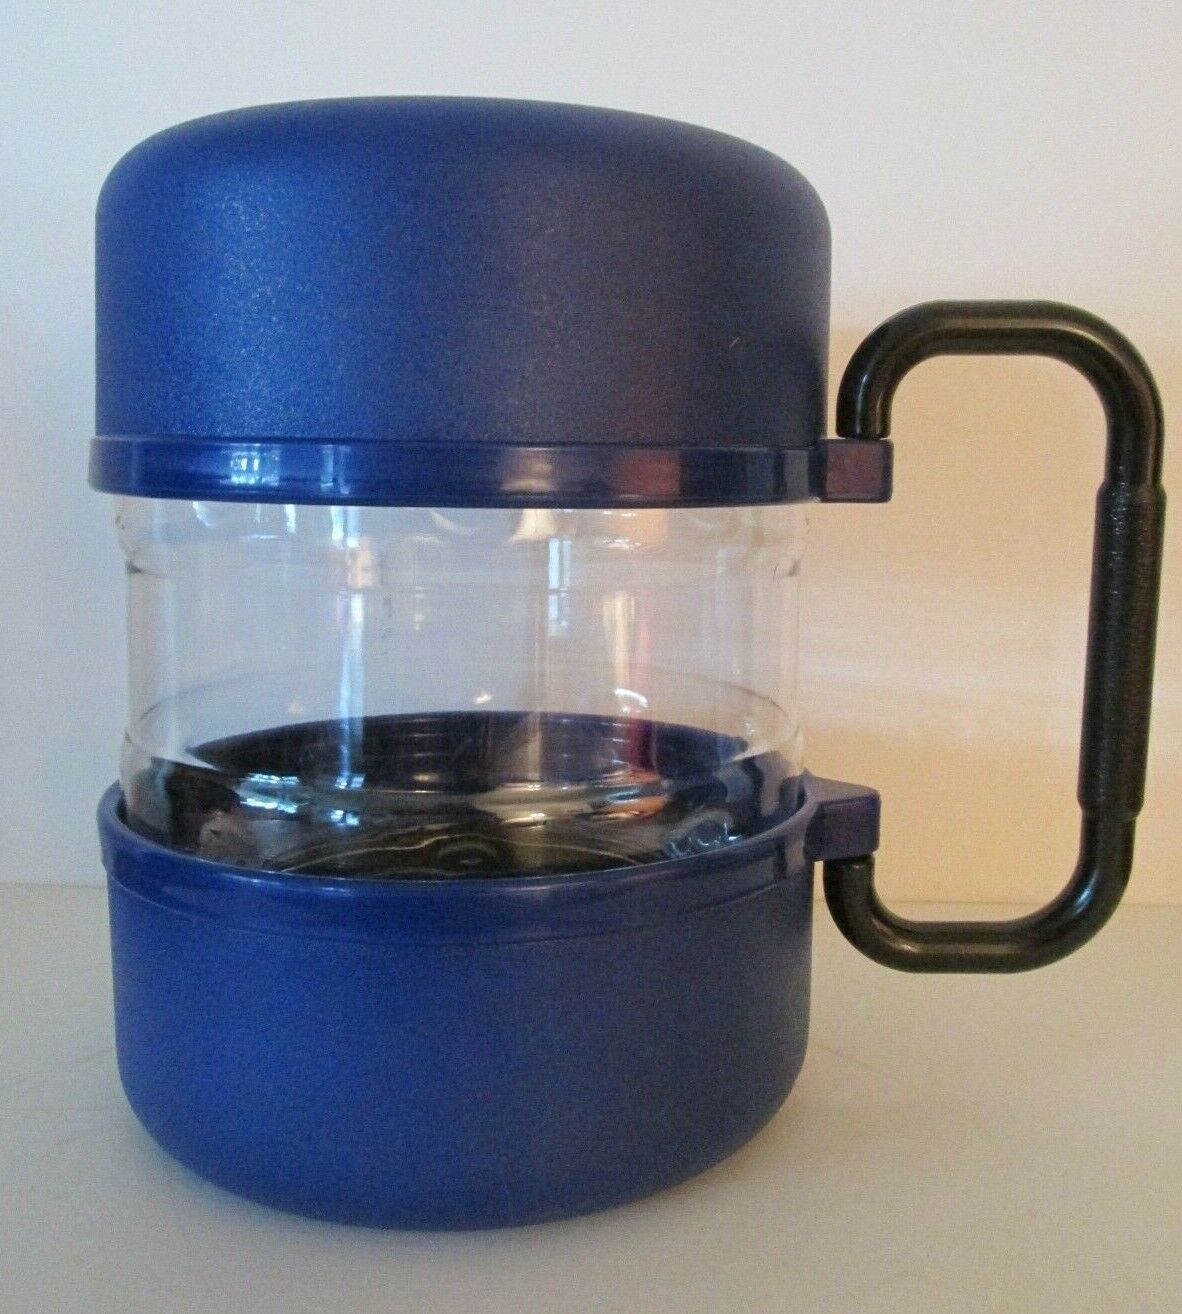 TRAVEL-tainer Blue  7 x 5.25 Travel Pet Food Storage and 2 Bowls